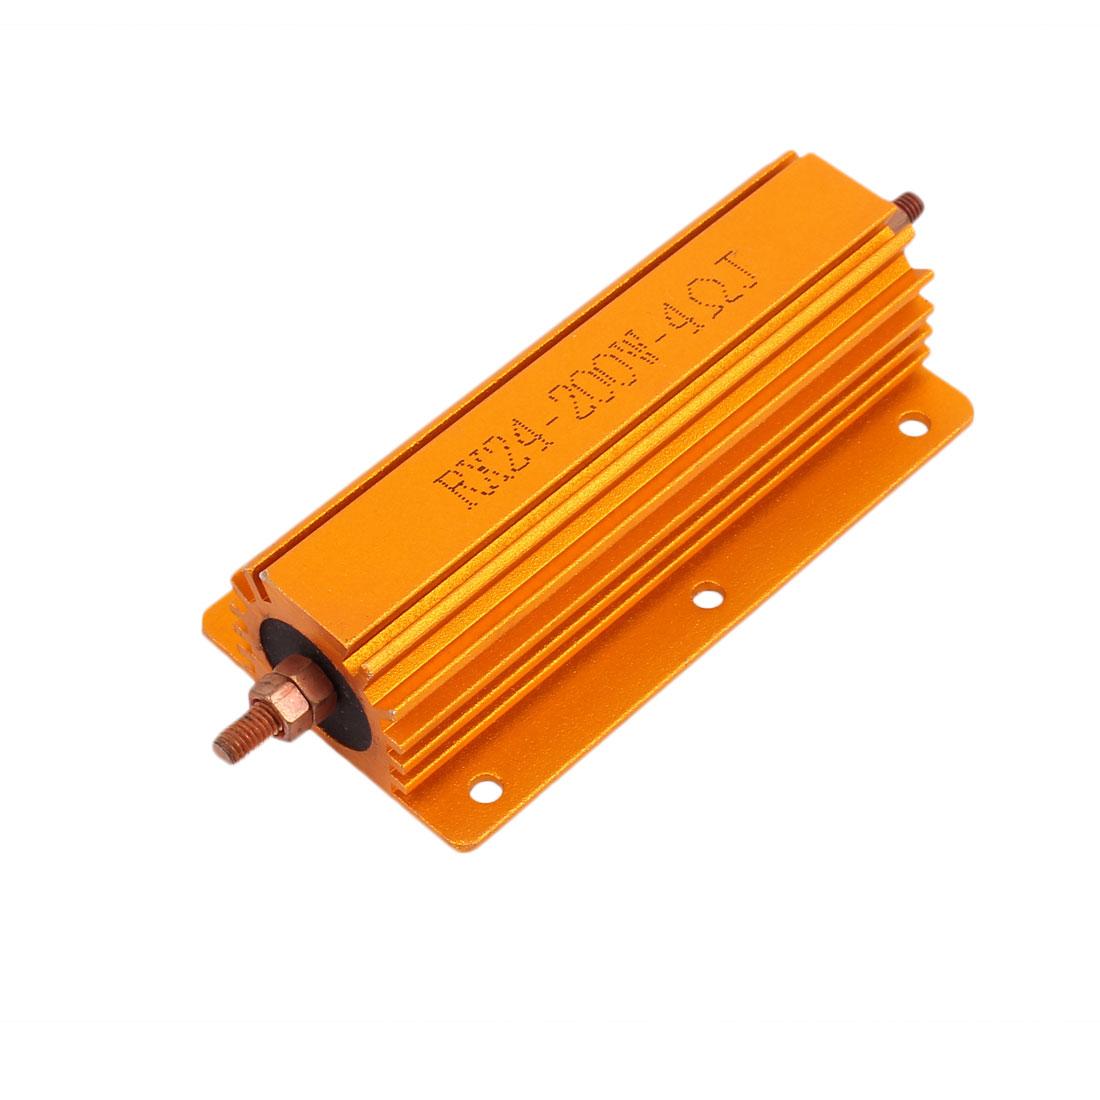 5% 200W 4 Ohm Wirewound Aluminum Housed Clad Resistor Gold Tone